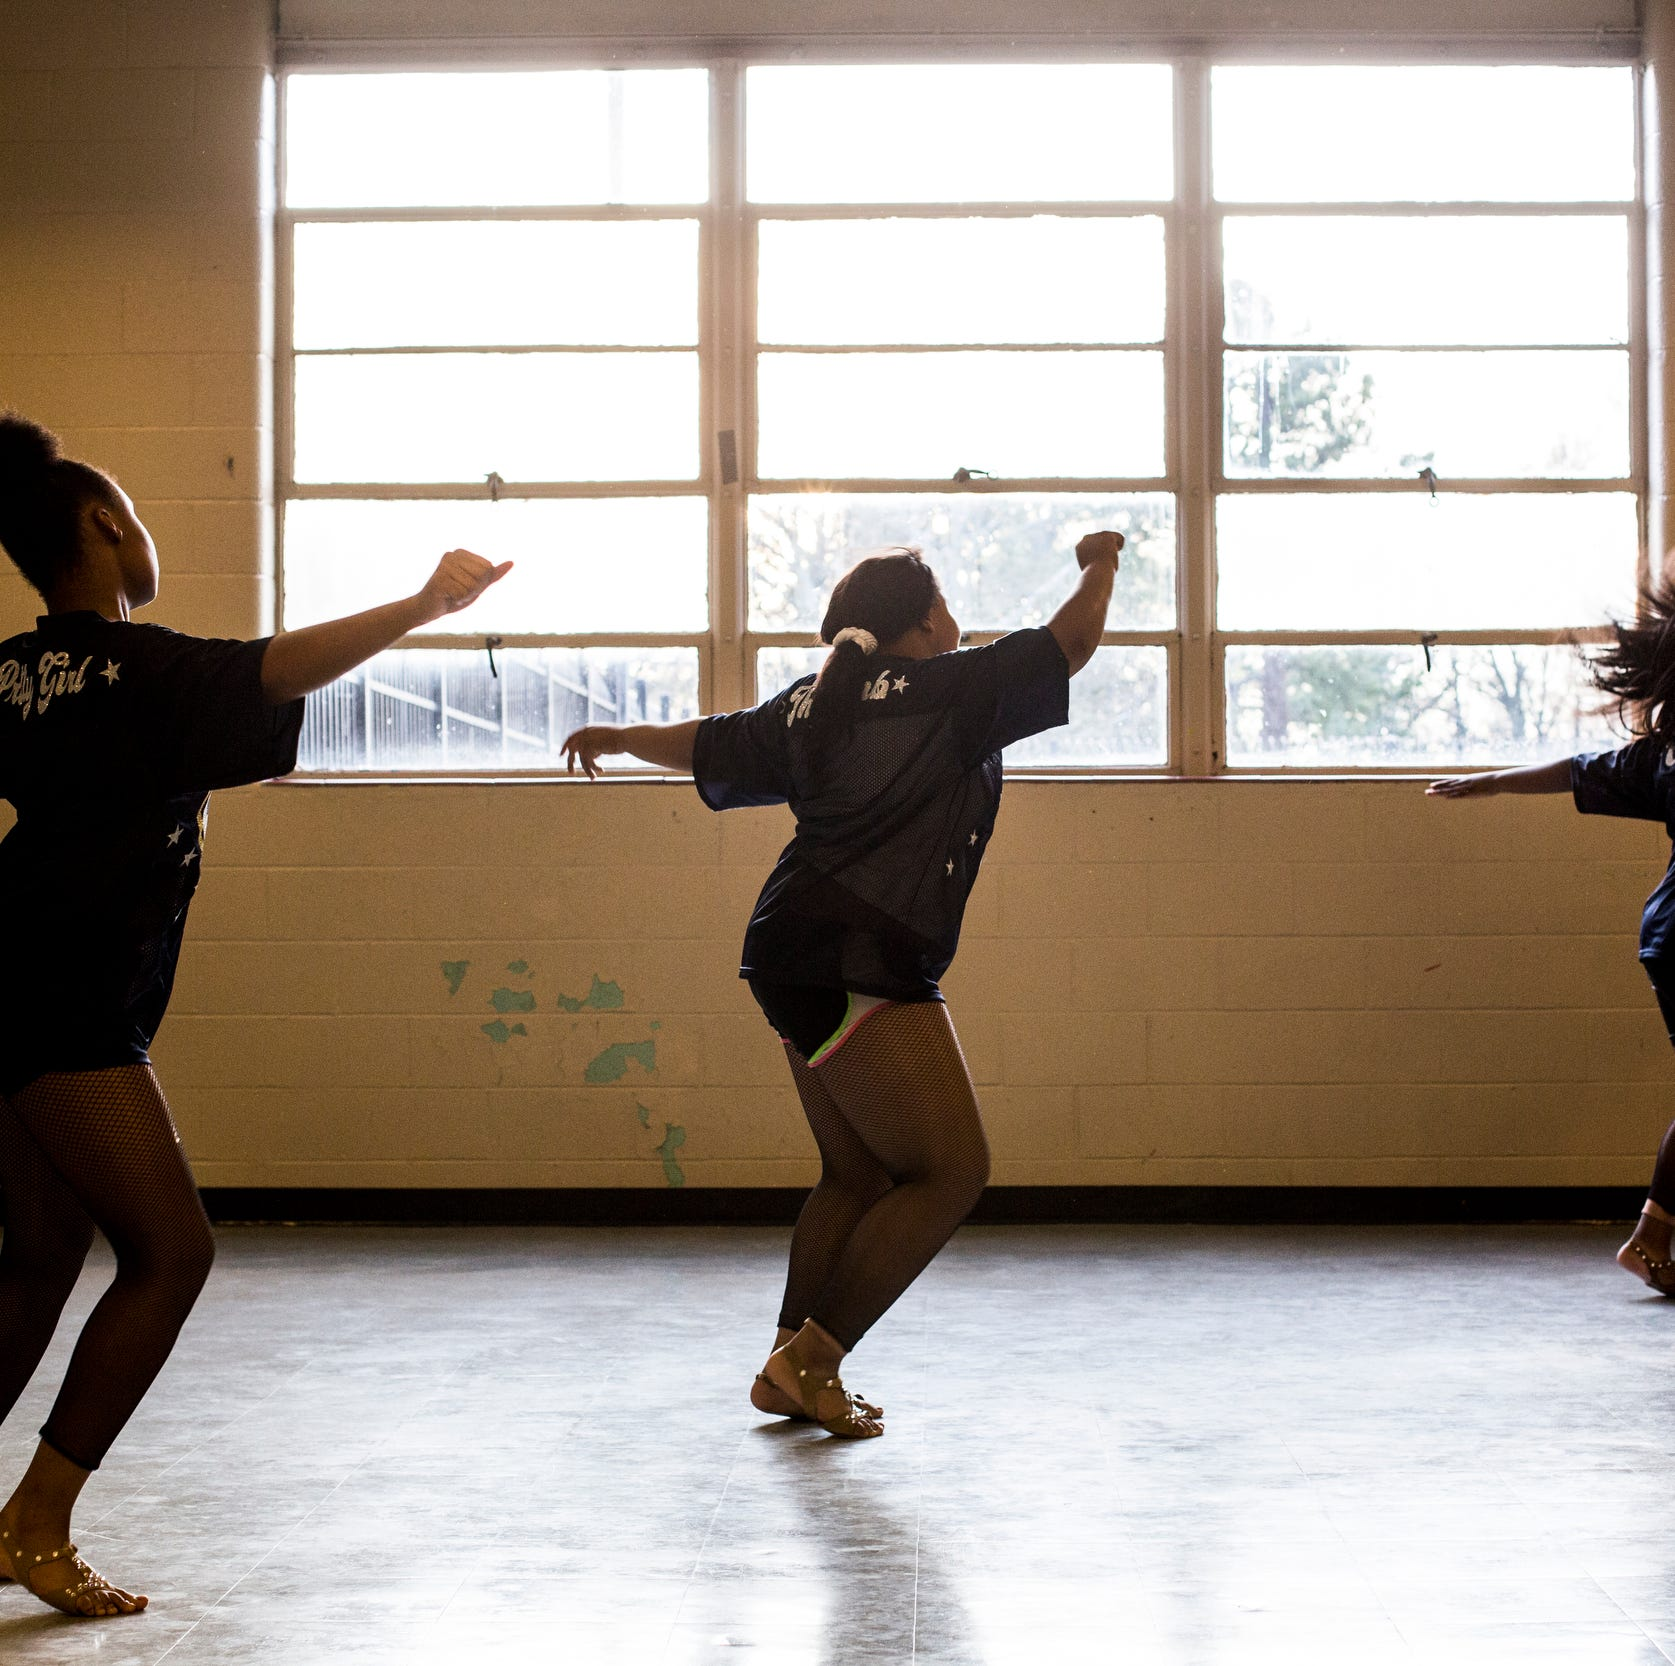 Youth dance group, martial arts club struggle with $75-per-hour community center fee